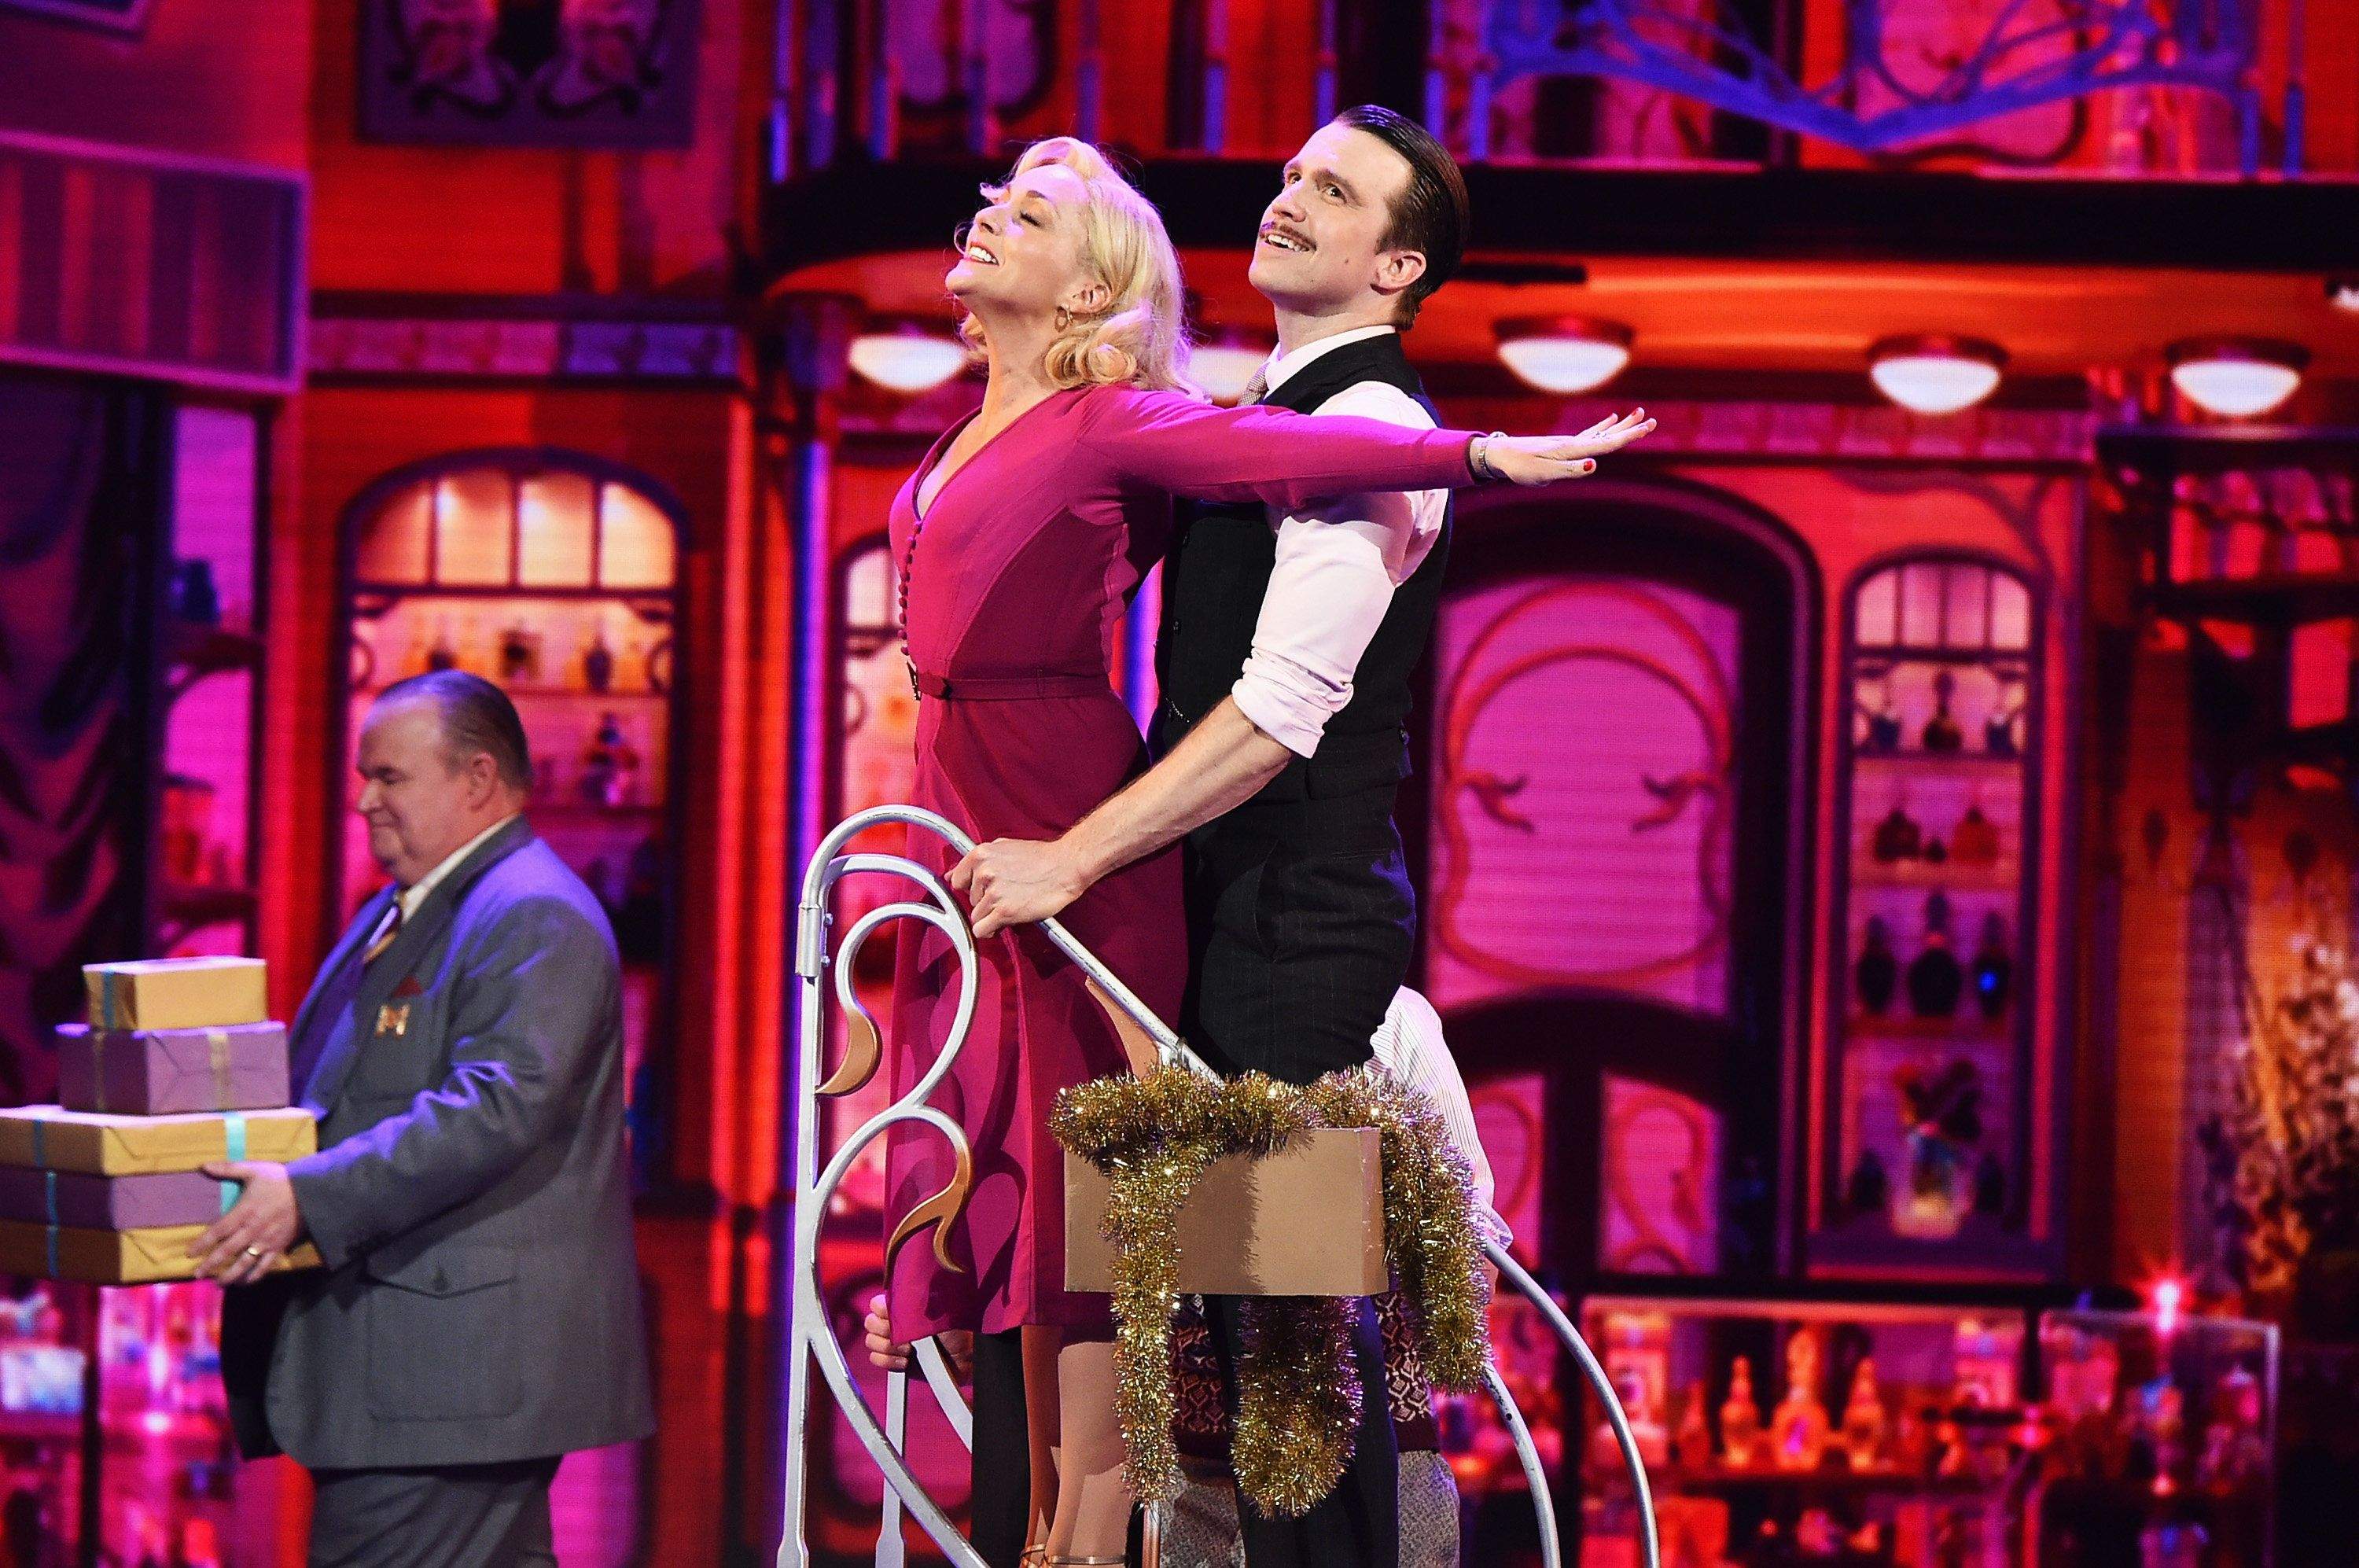 NEW YORK, NY - JUNE 12:  Jane Krakowski and Gavin Creel of 'She Loves Me' perform onstage during the 70th Annual Tony Awards at The Beacon Theatre on June 12, 2016 in New York City.  (Photo by Theo Wargo/Getty Images for Tony Awards Productions)